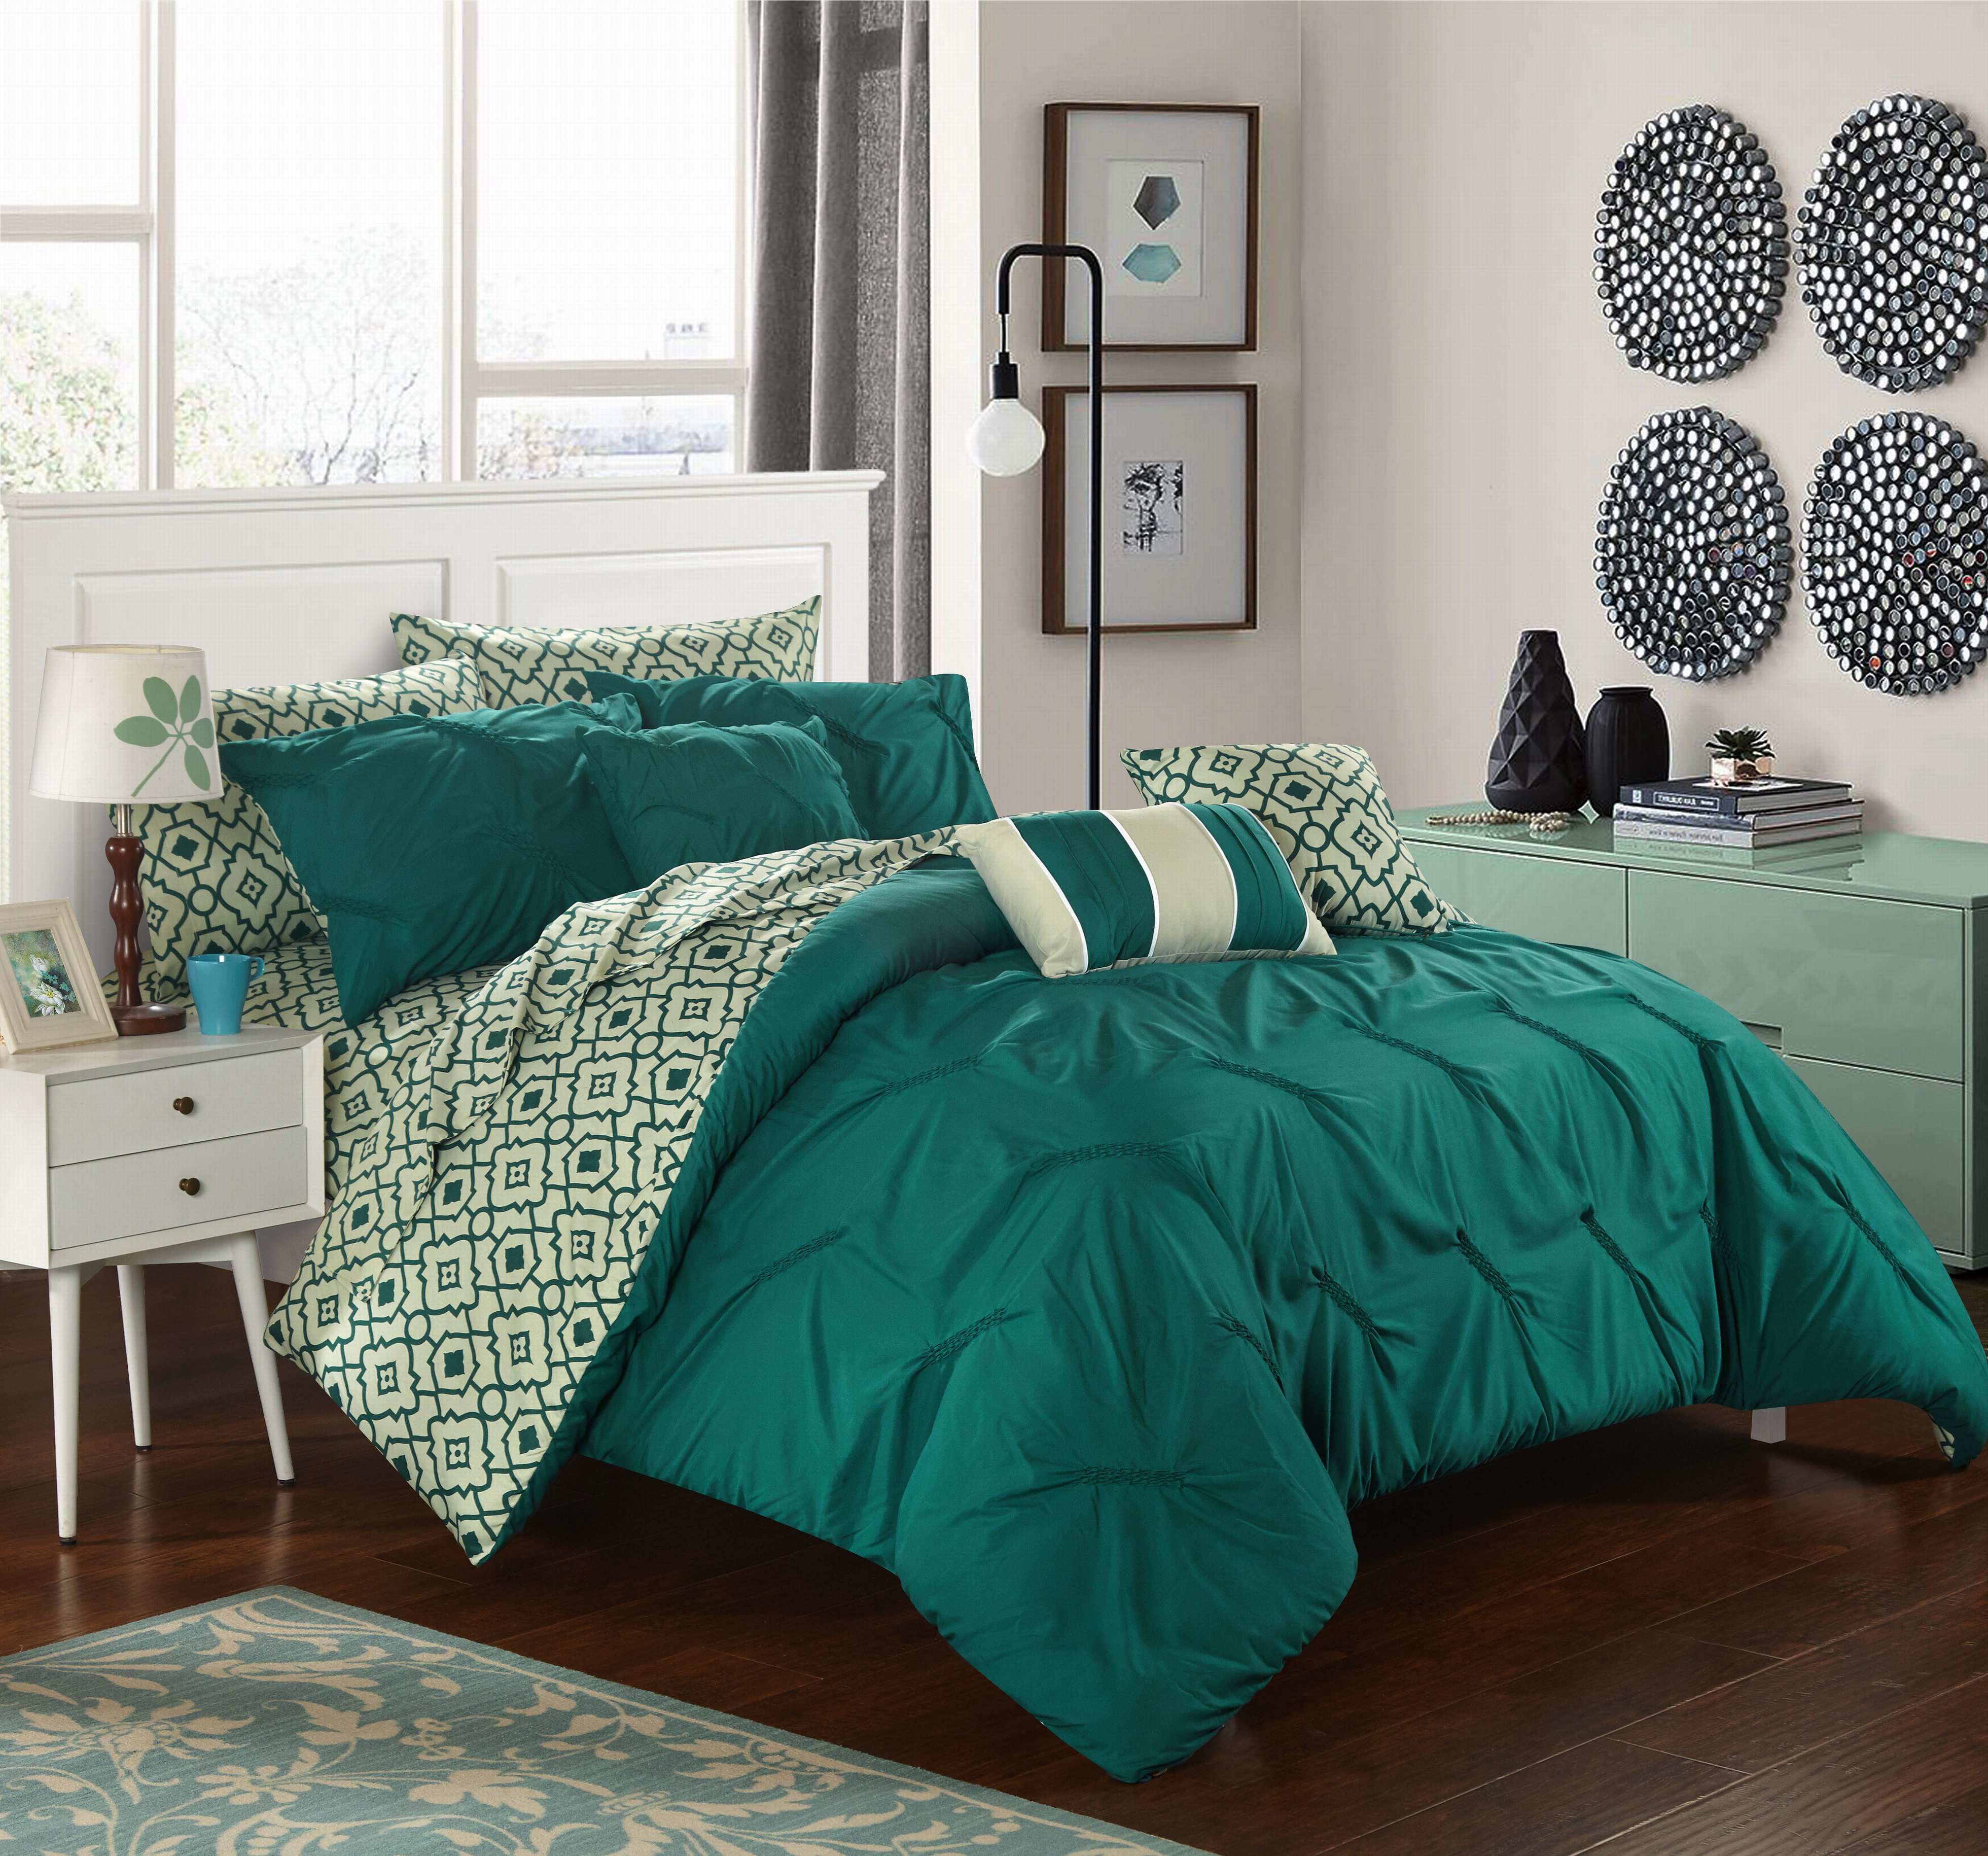 Chic Home 10-Piece Fedel Reversible Bed in a Bag Comforter Set